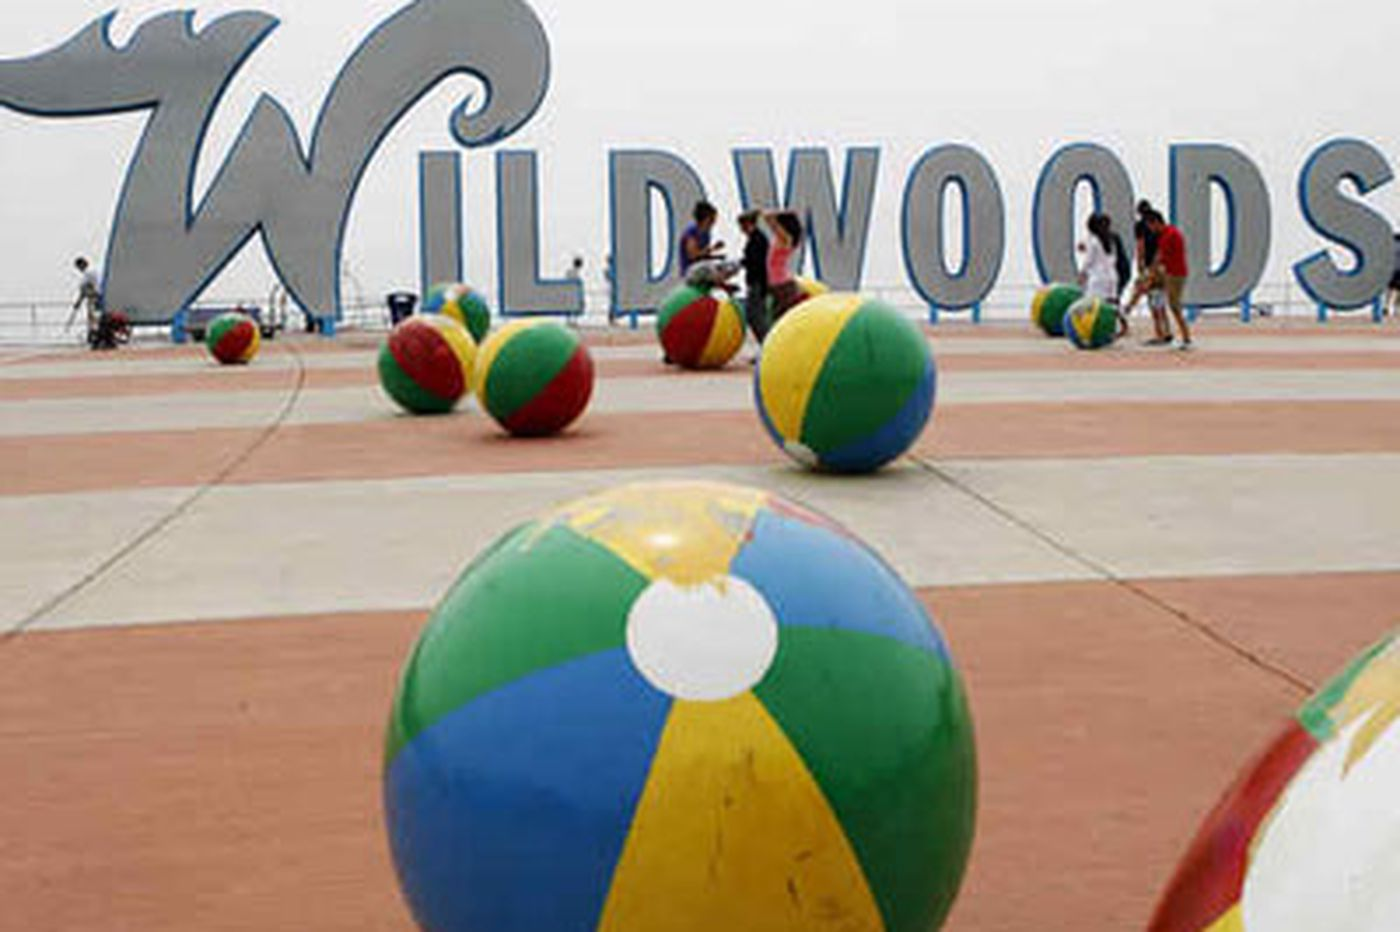 Best Beach title goes to Wildwoods